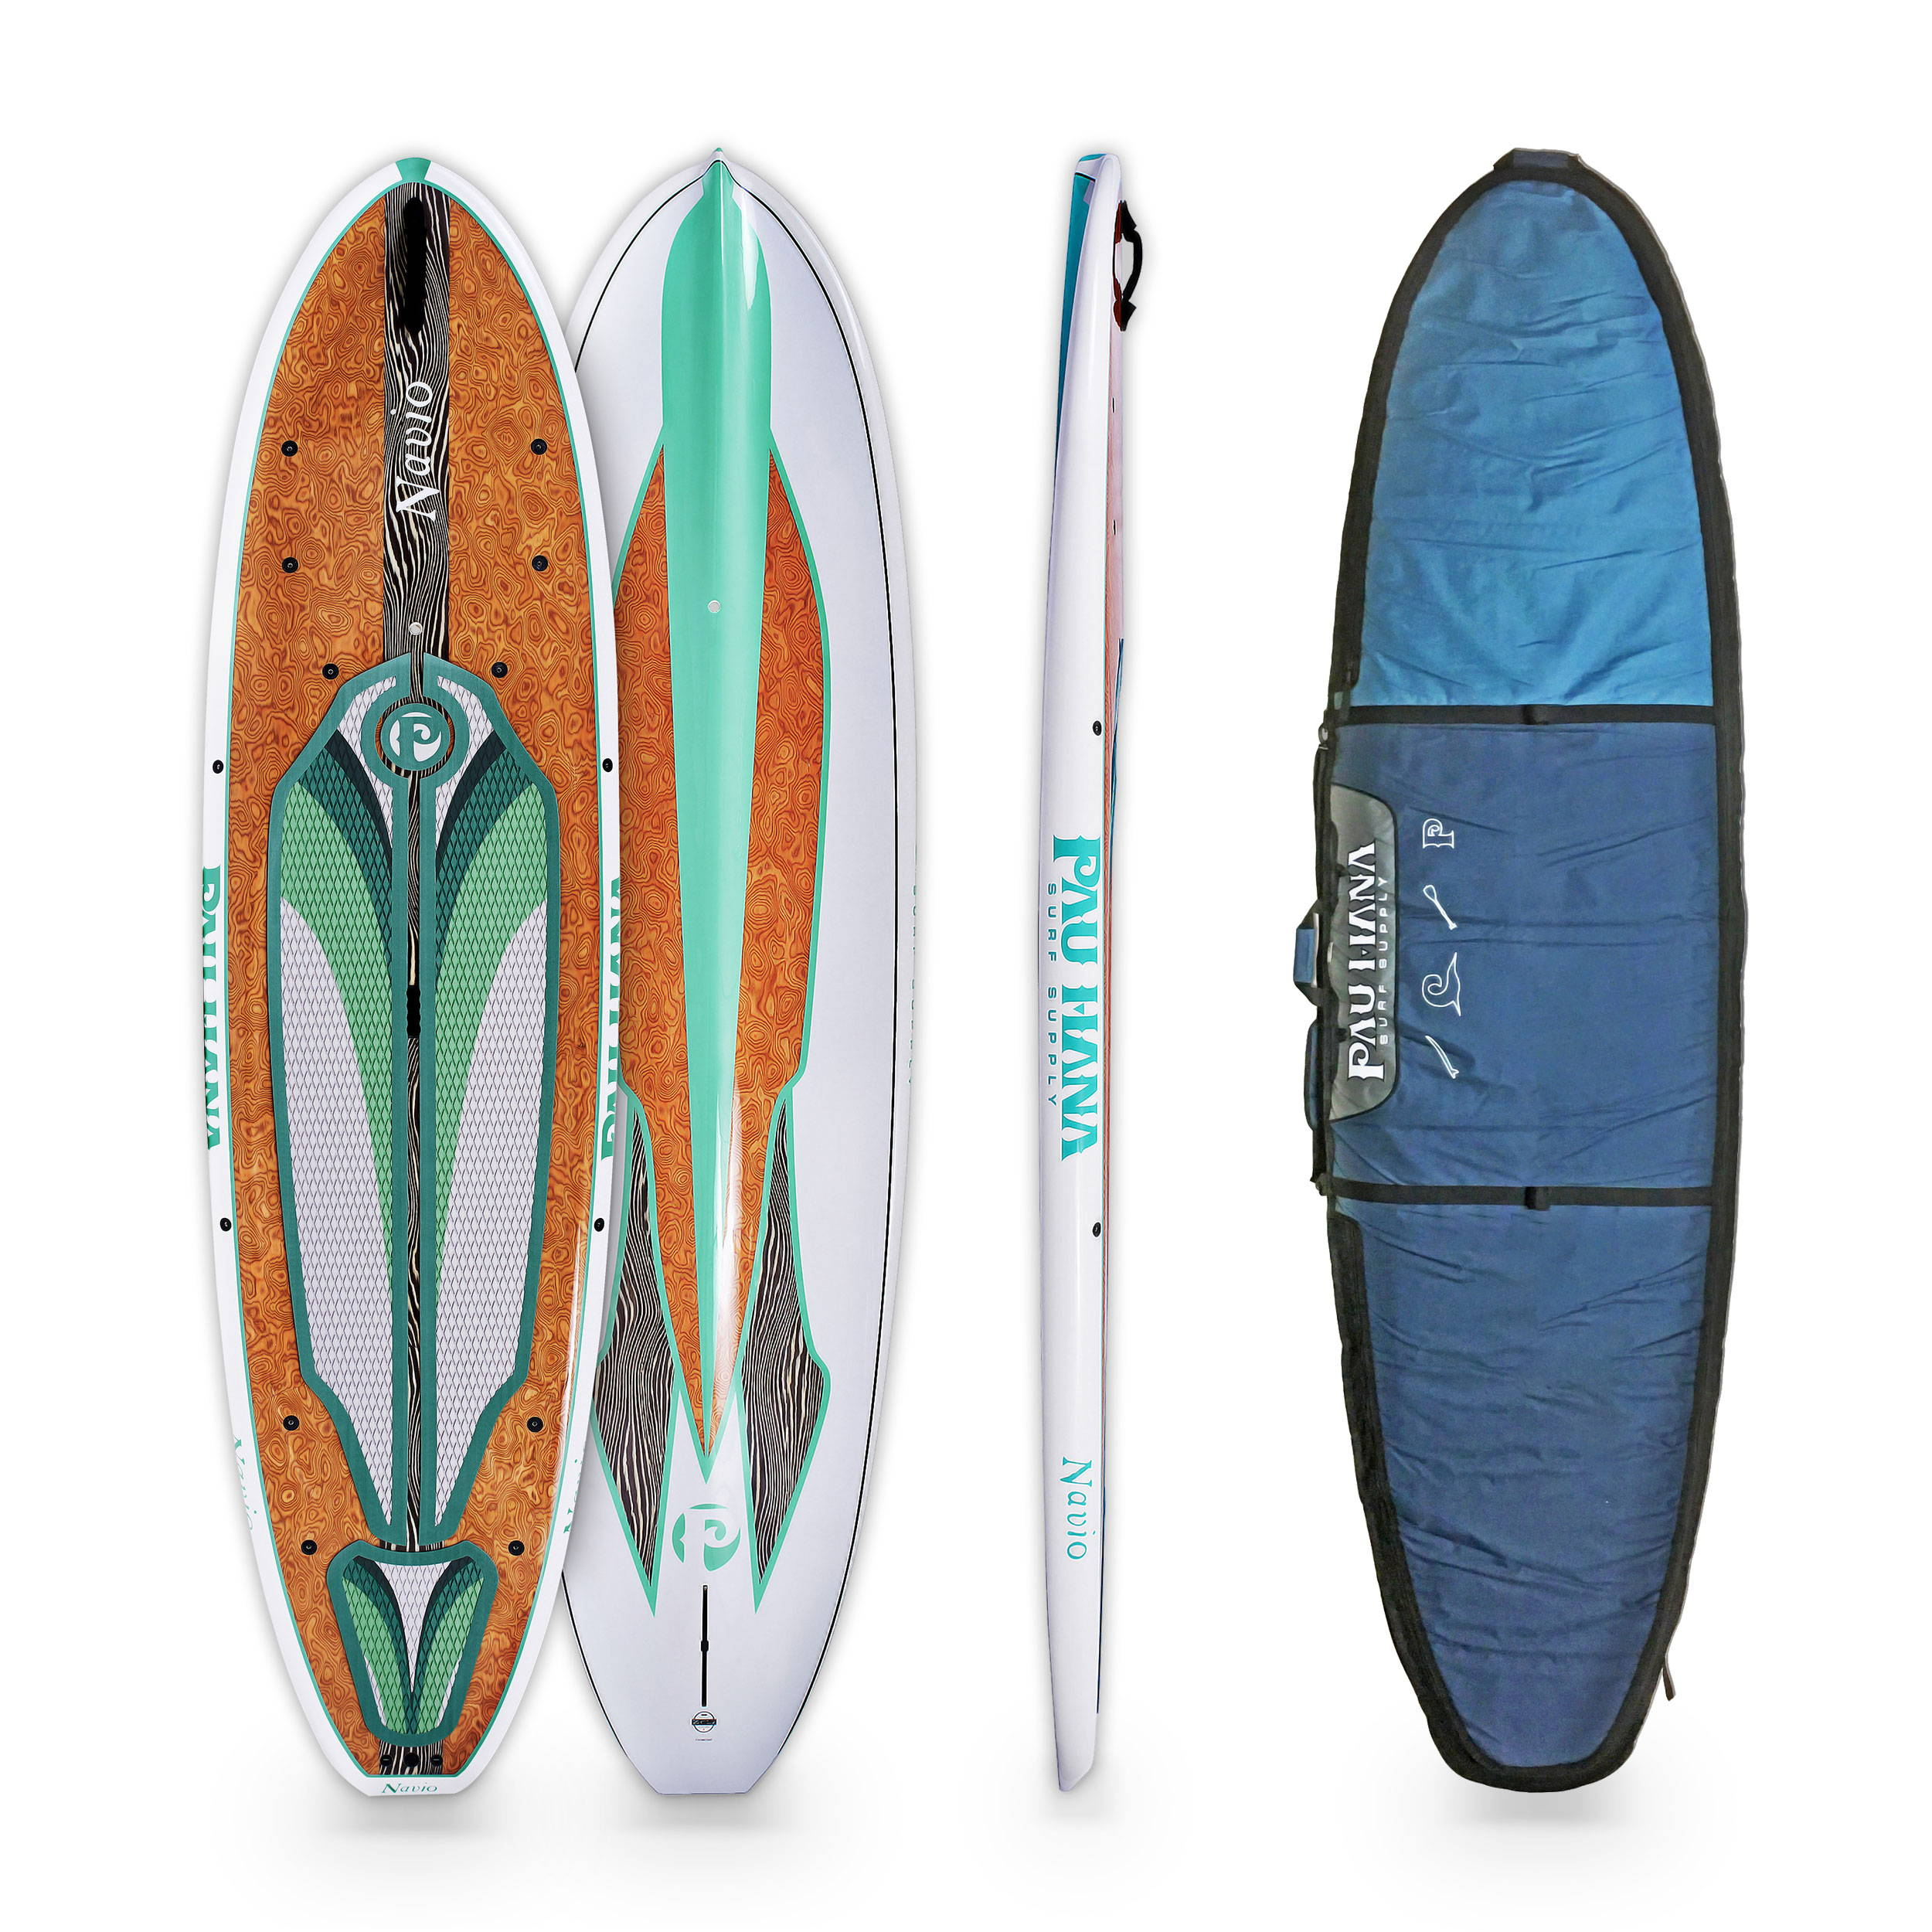 Navio paddle board and SUP board bag